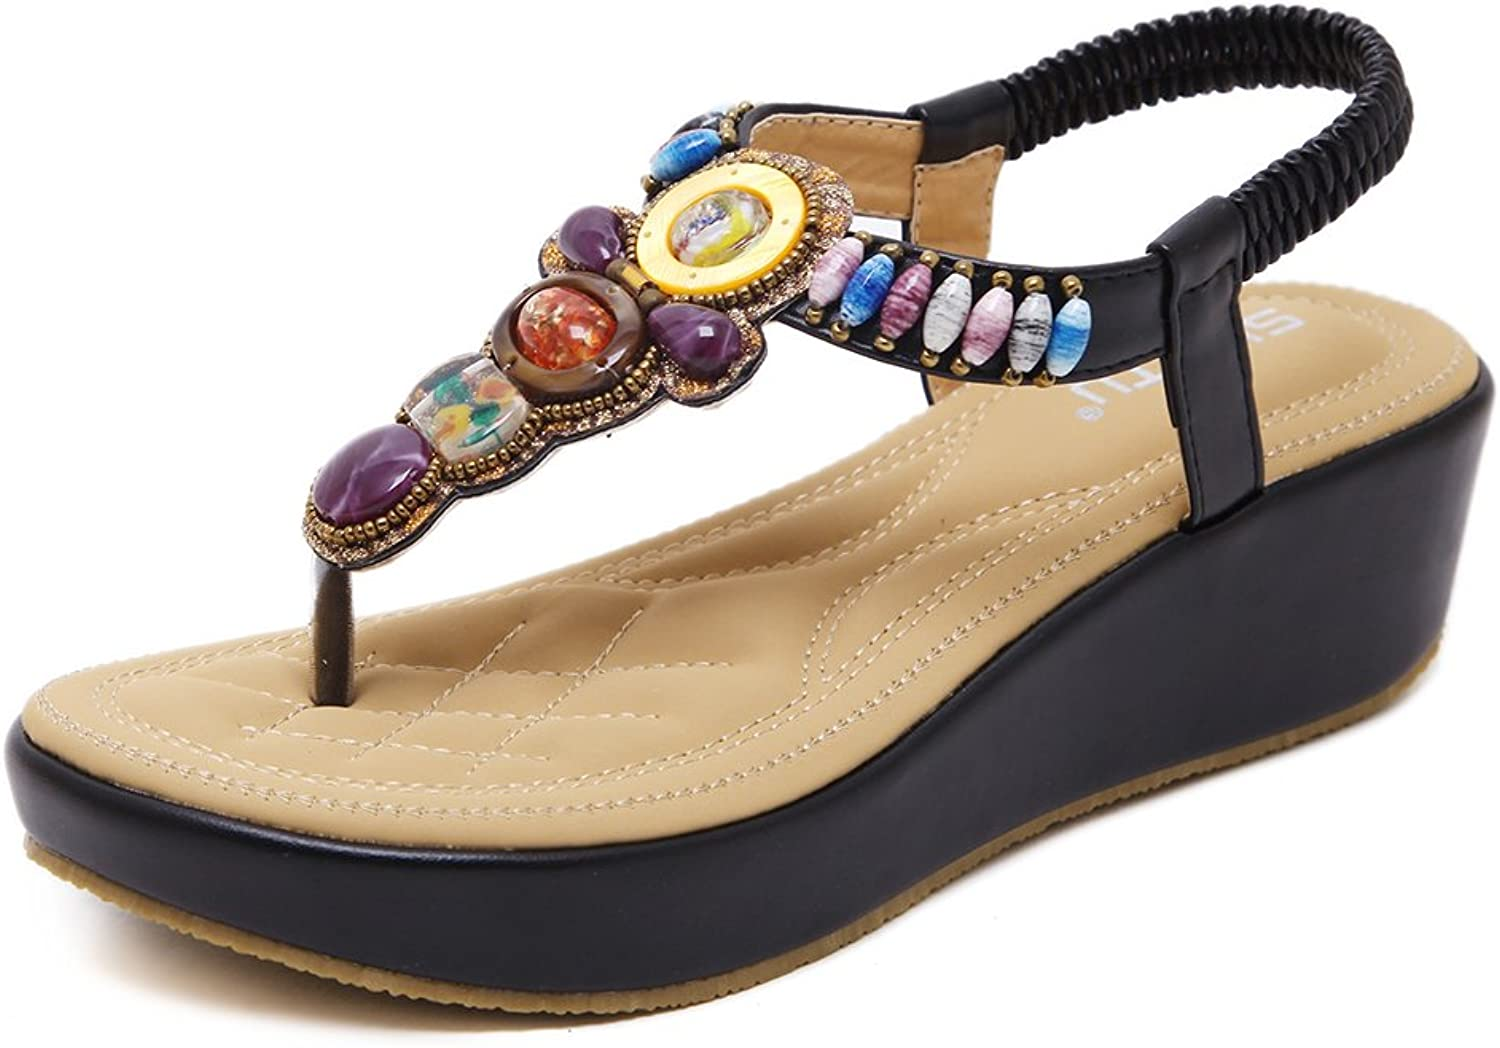 Tuoup Women's Stylish Jeweled Leather Platform Thong Sandals